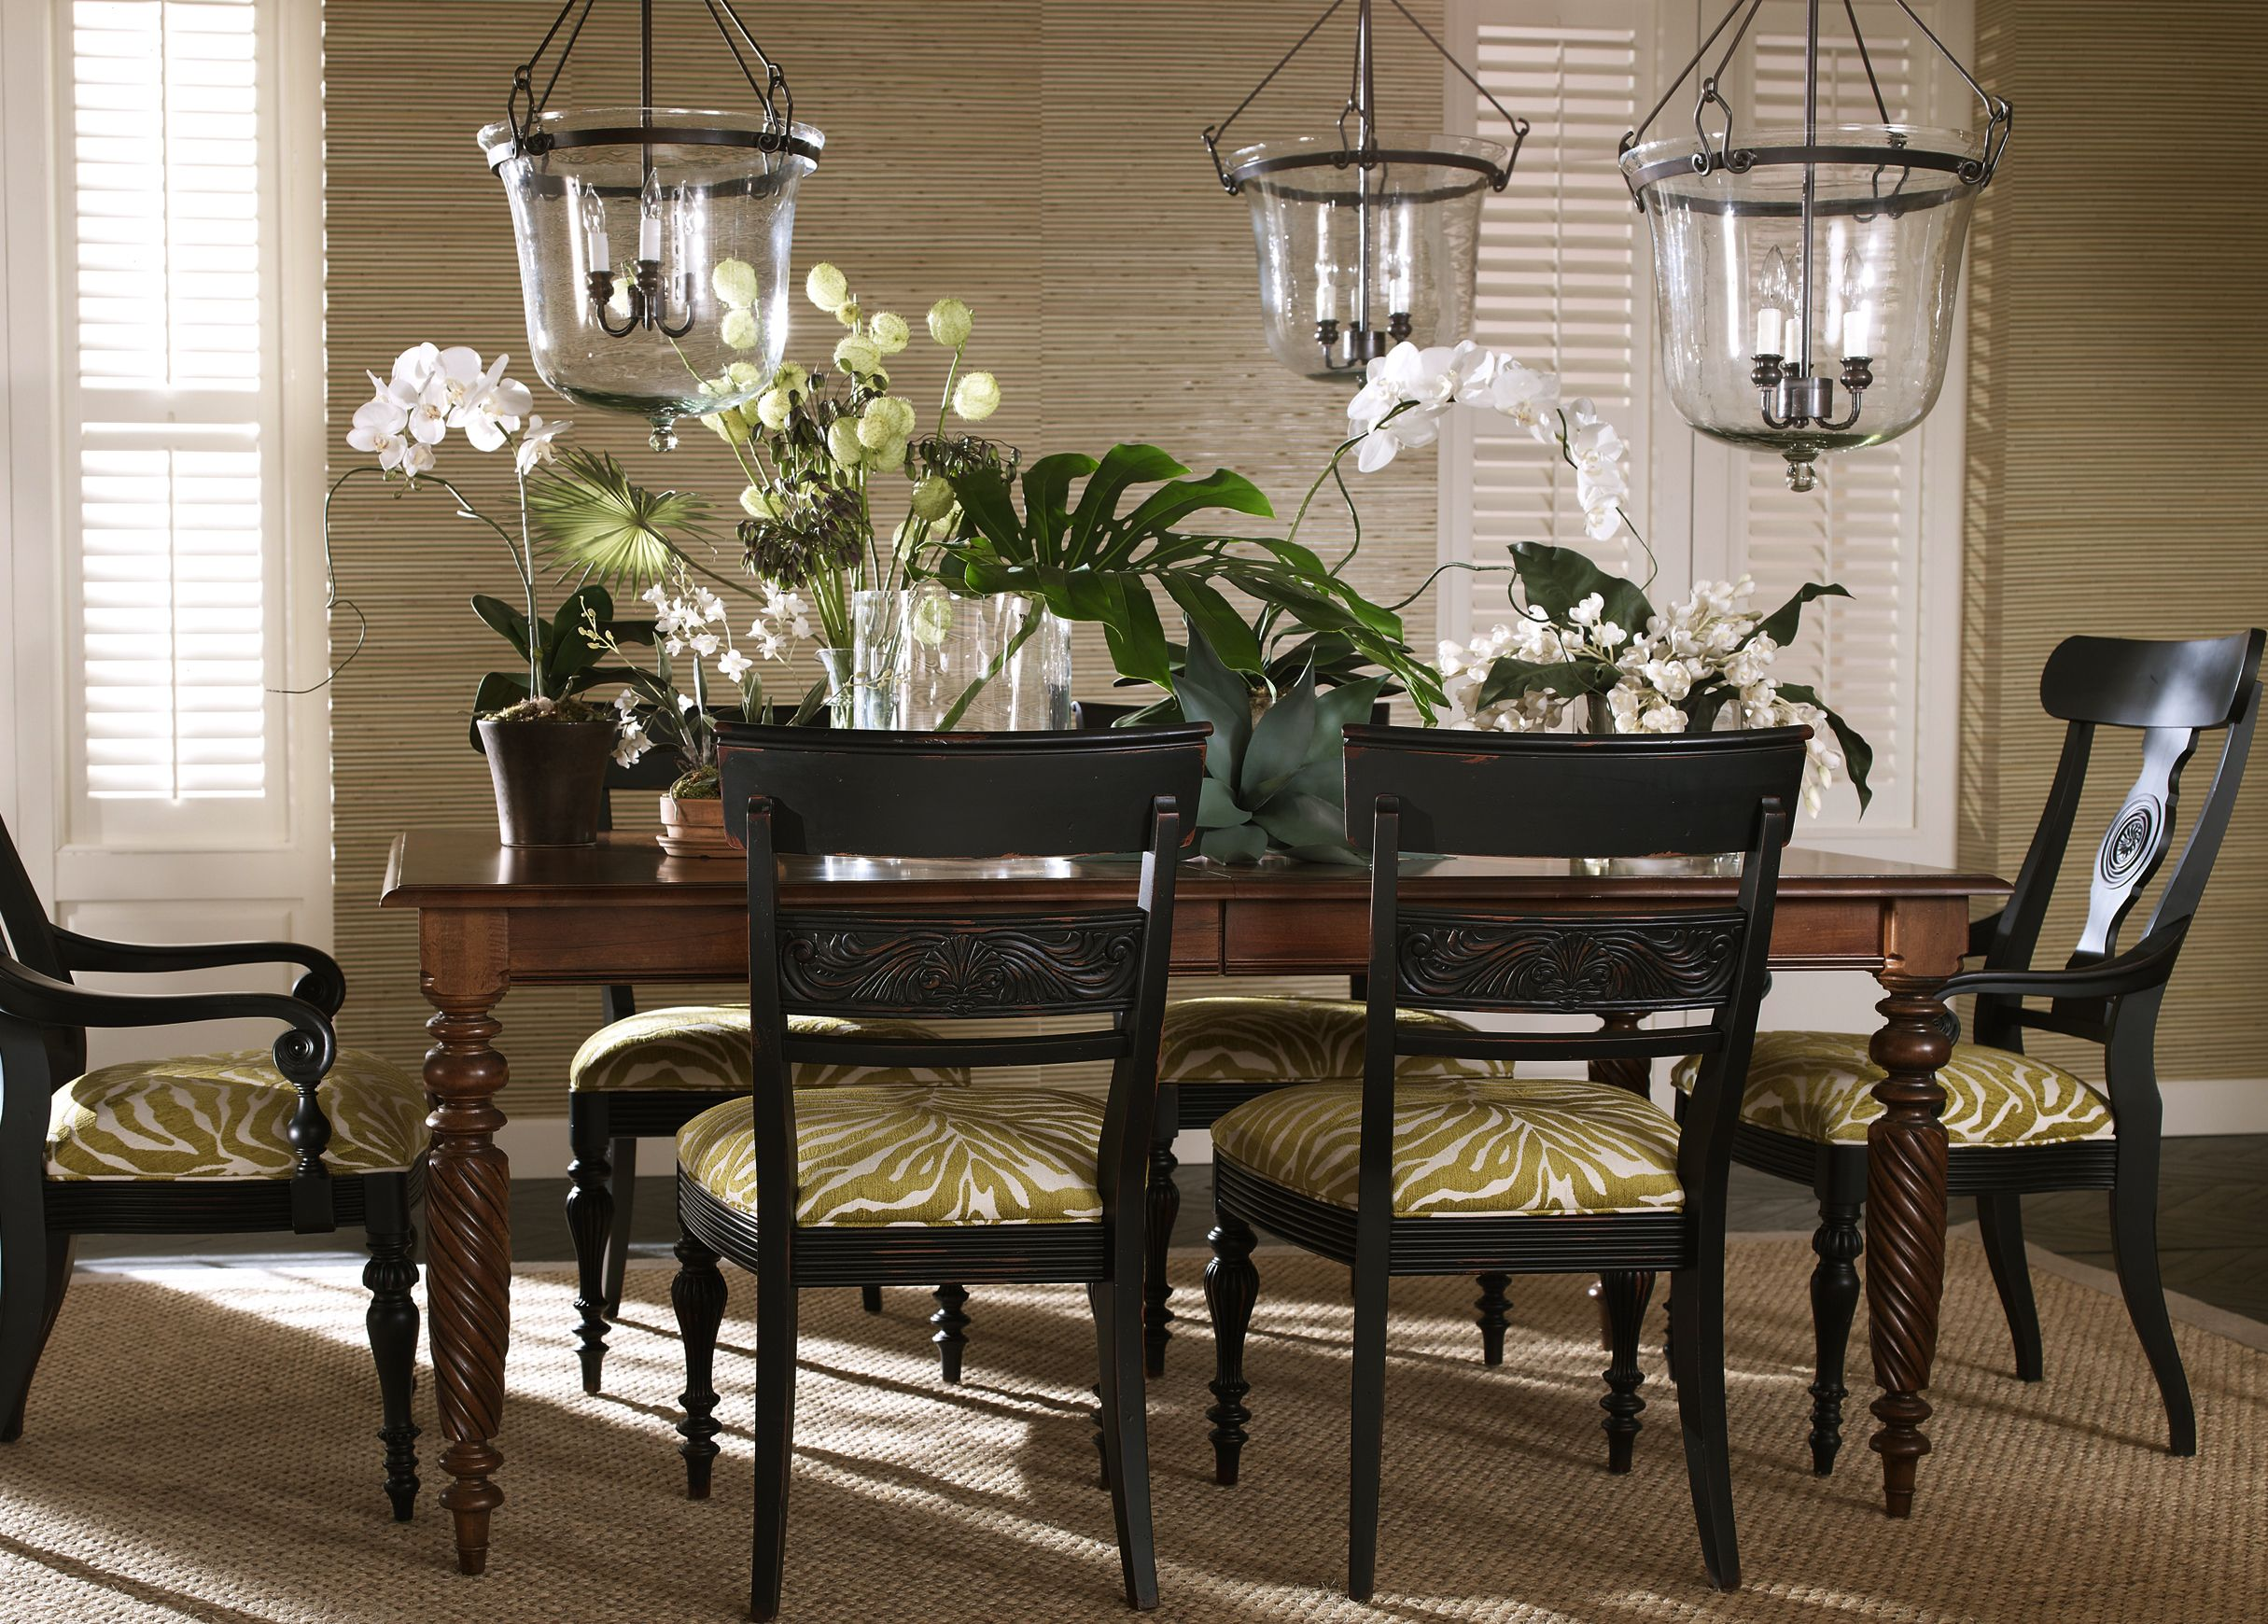 Windward dining room ethan allen home ideas decor and design